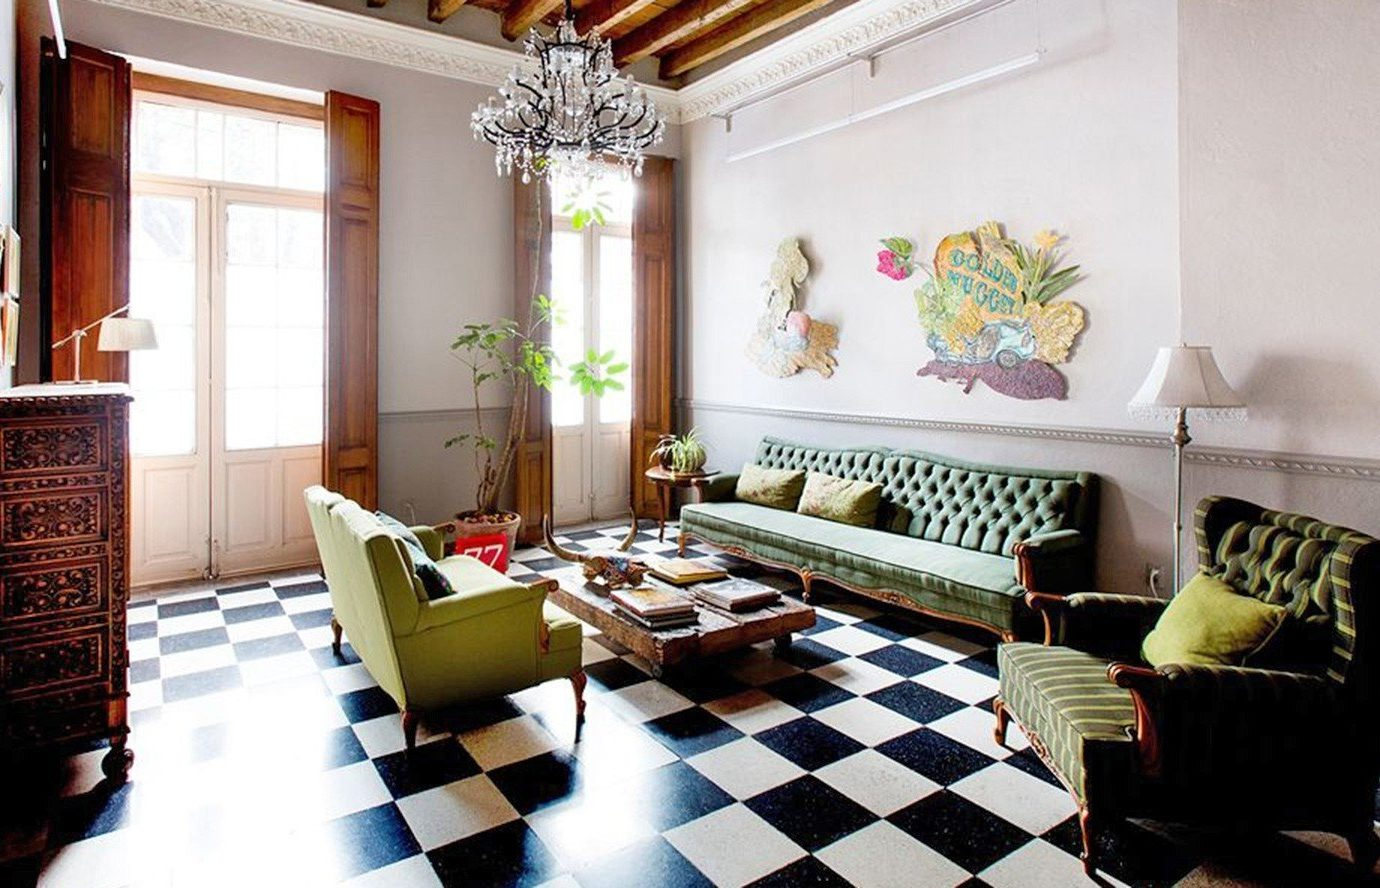 10 Boutique Stays That Will Blow Your Mind